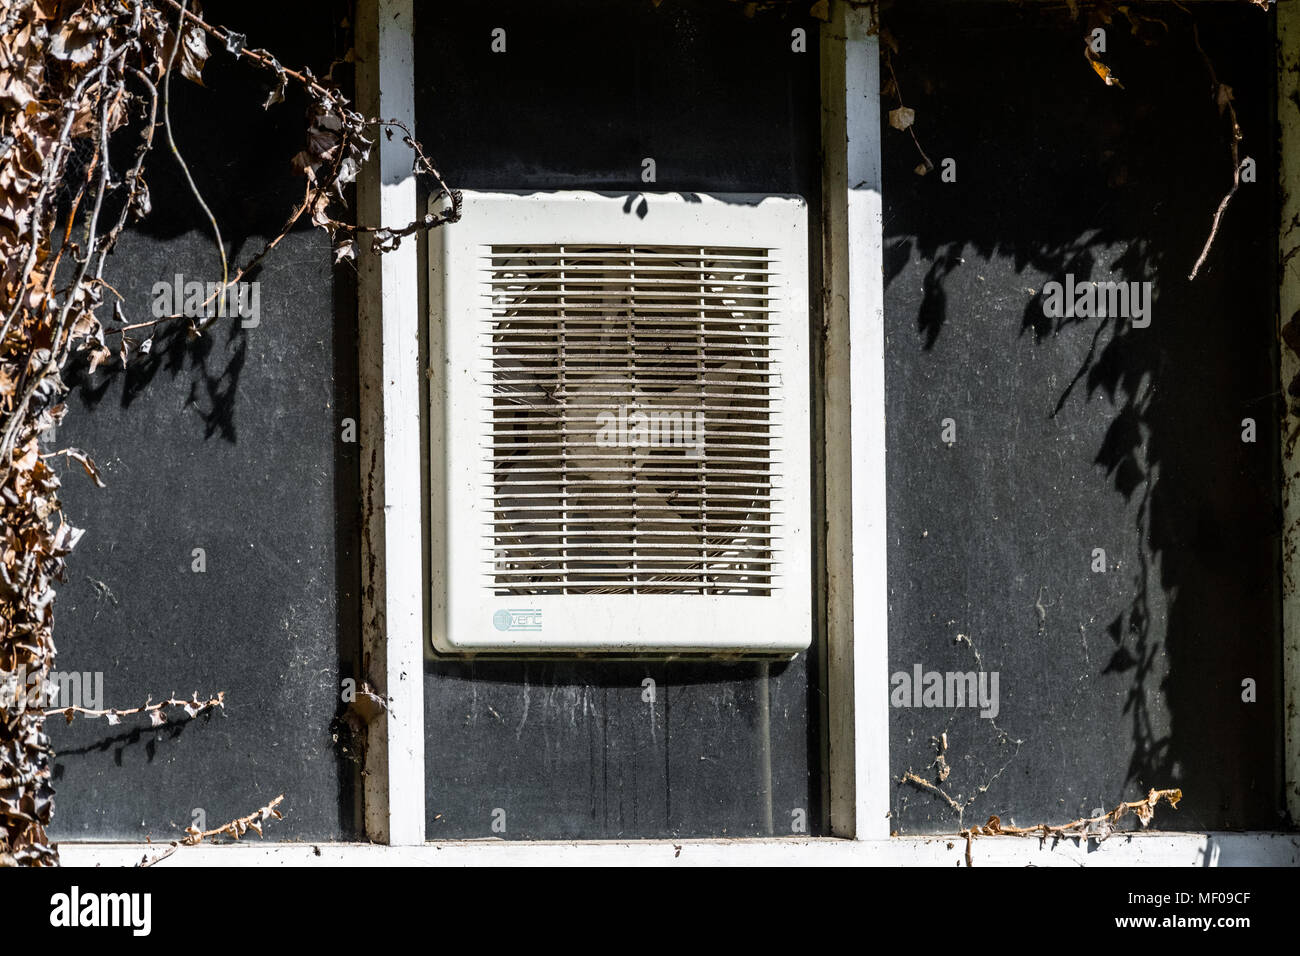 Extractor Fan Stockfotos & Extractor Fan Bilder - Alamy